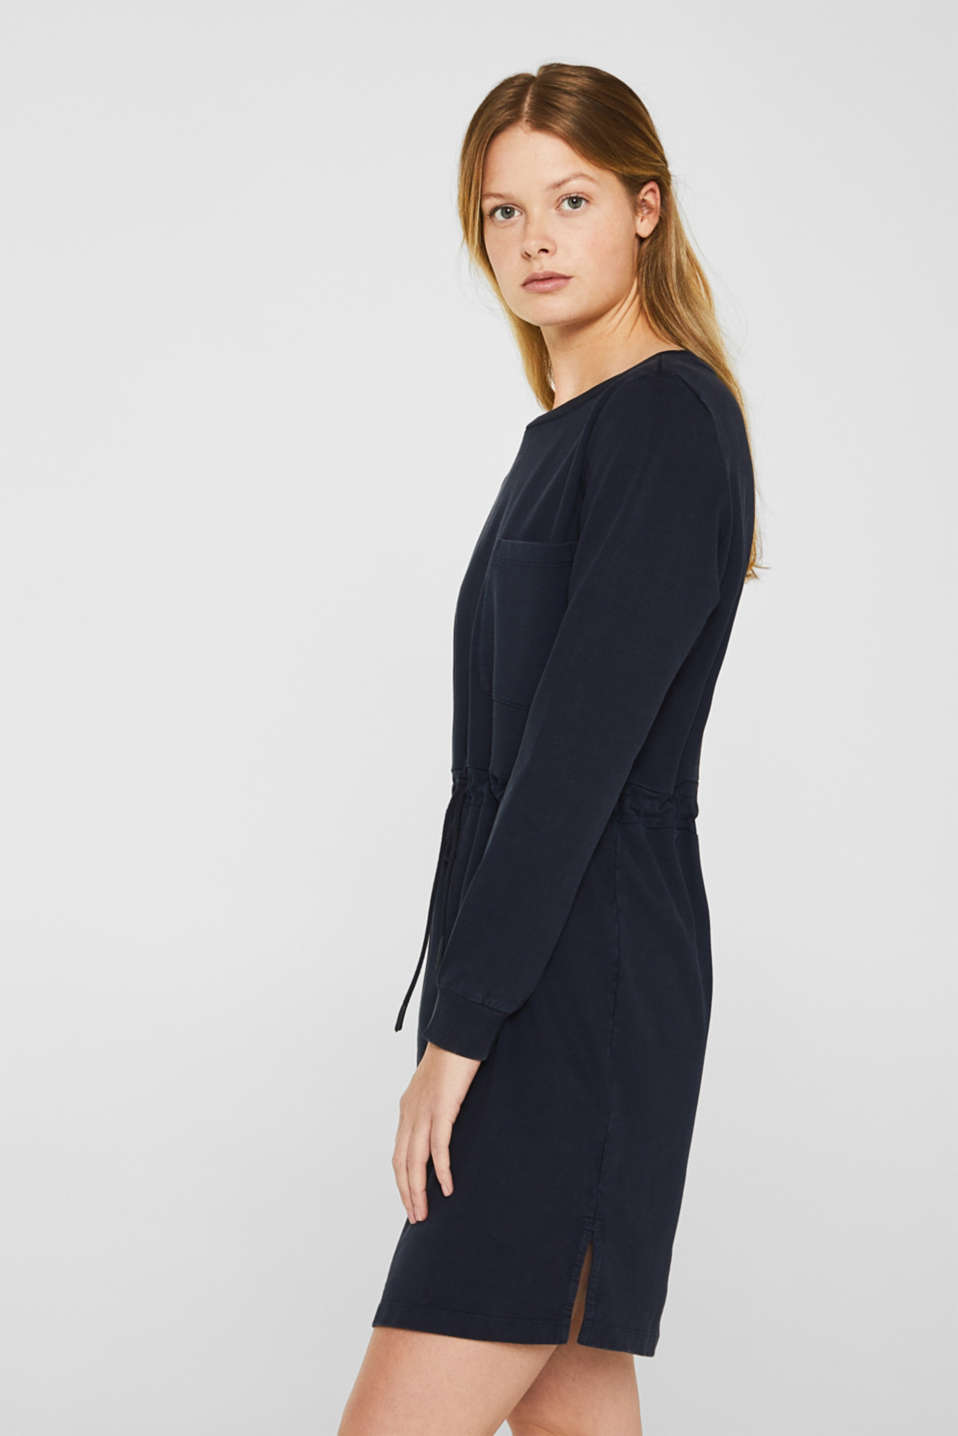 Sweatshirt dress with a drawstring, 100% cotton, NAVY, detail image number 4